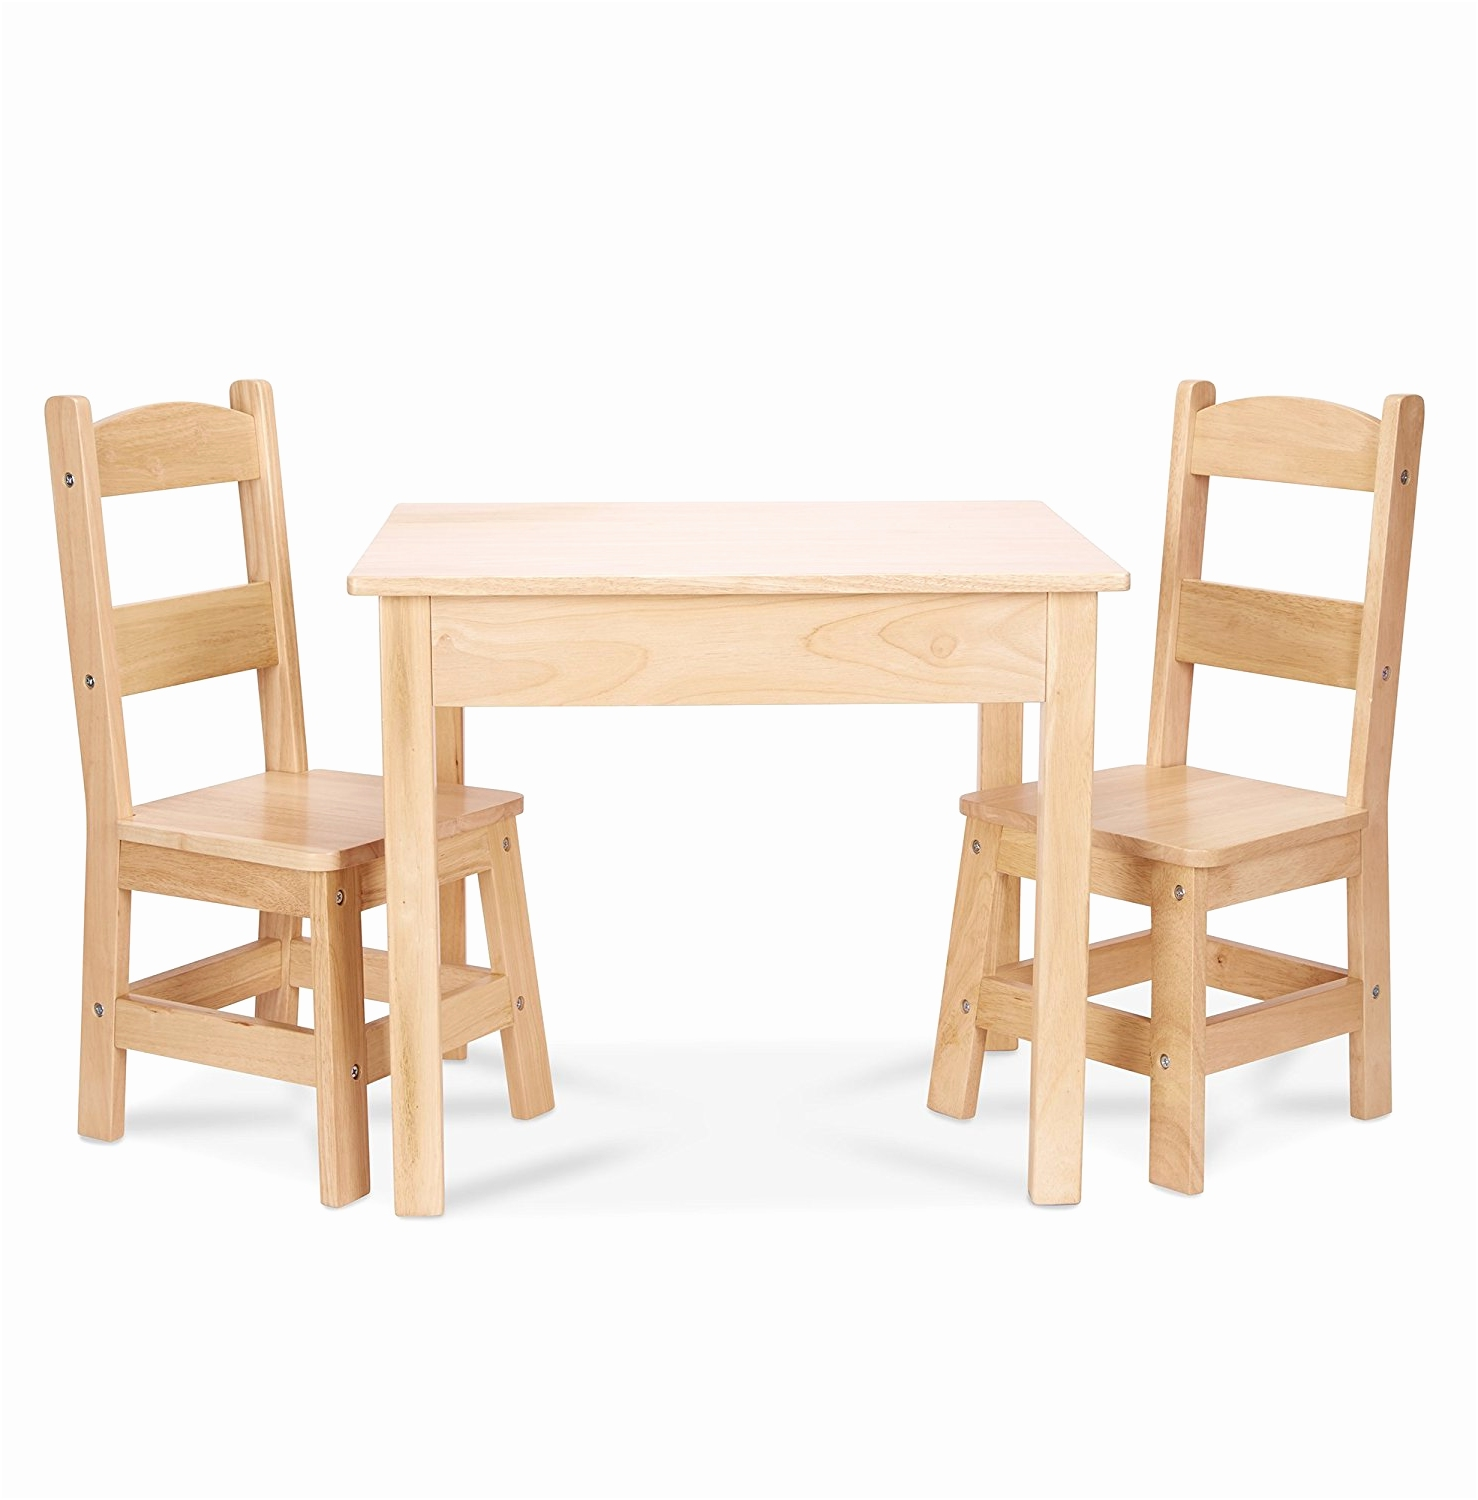 Melissa And Doug Table And Chairs Child Wood Table And Chair Set Toddler Wooden Table And